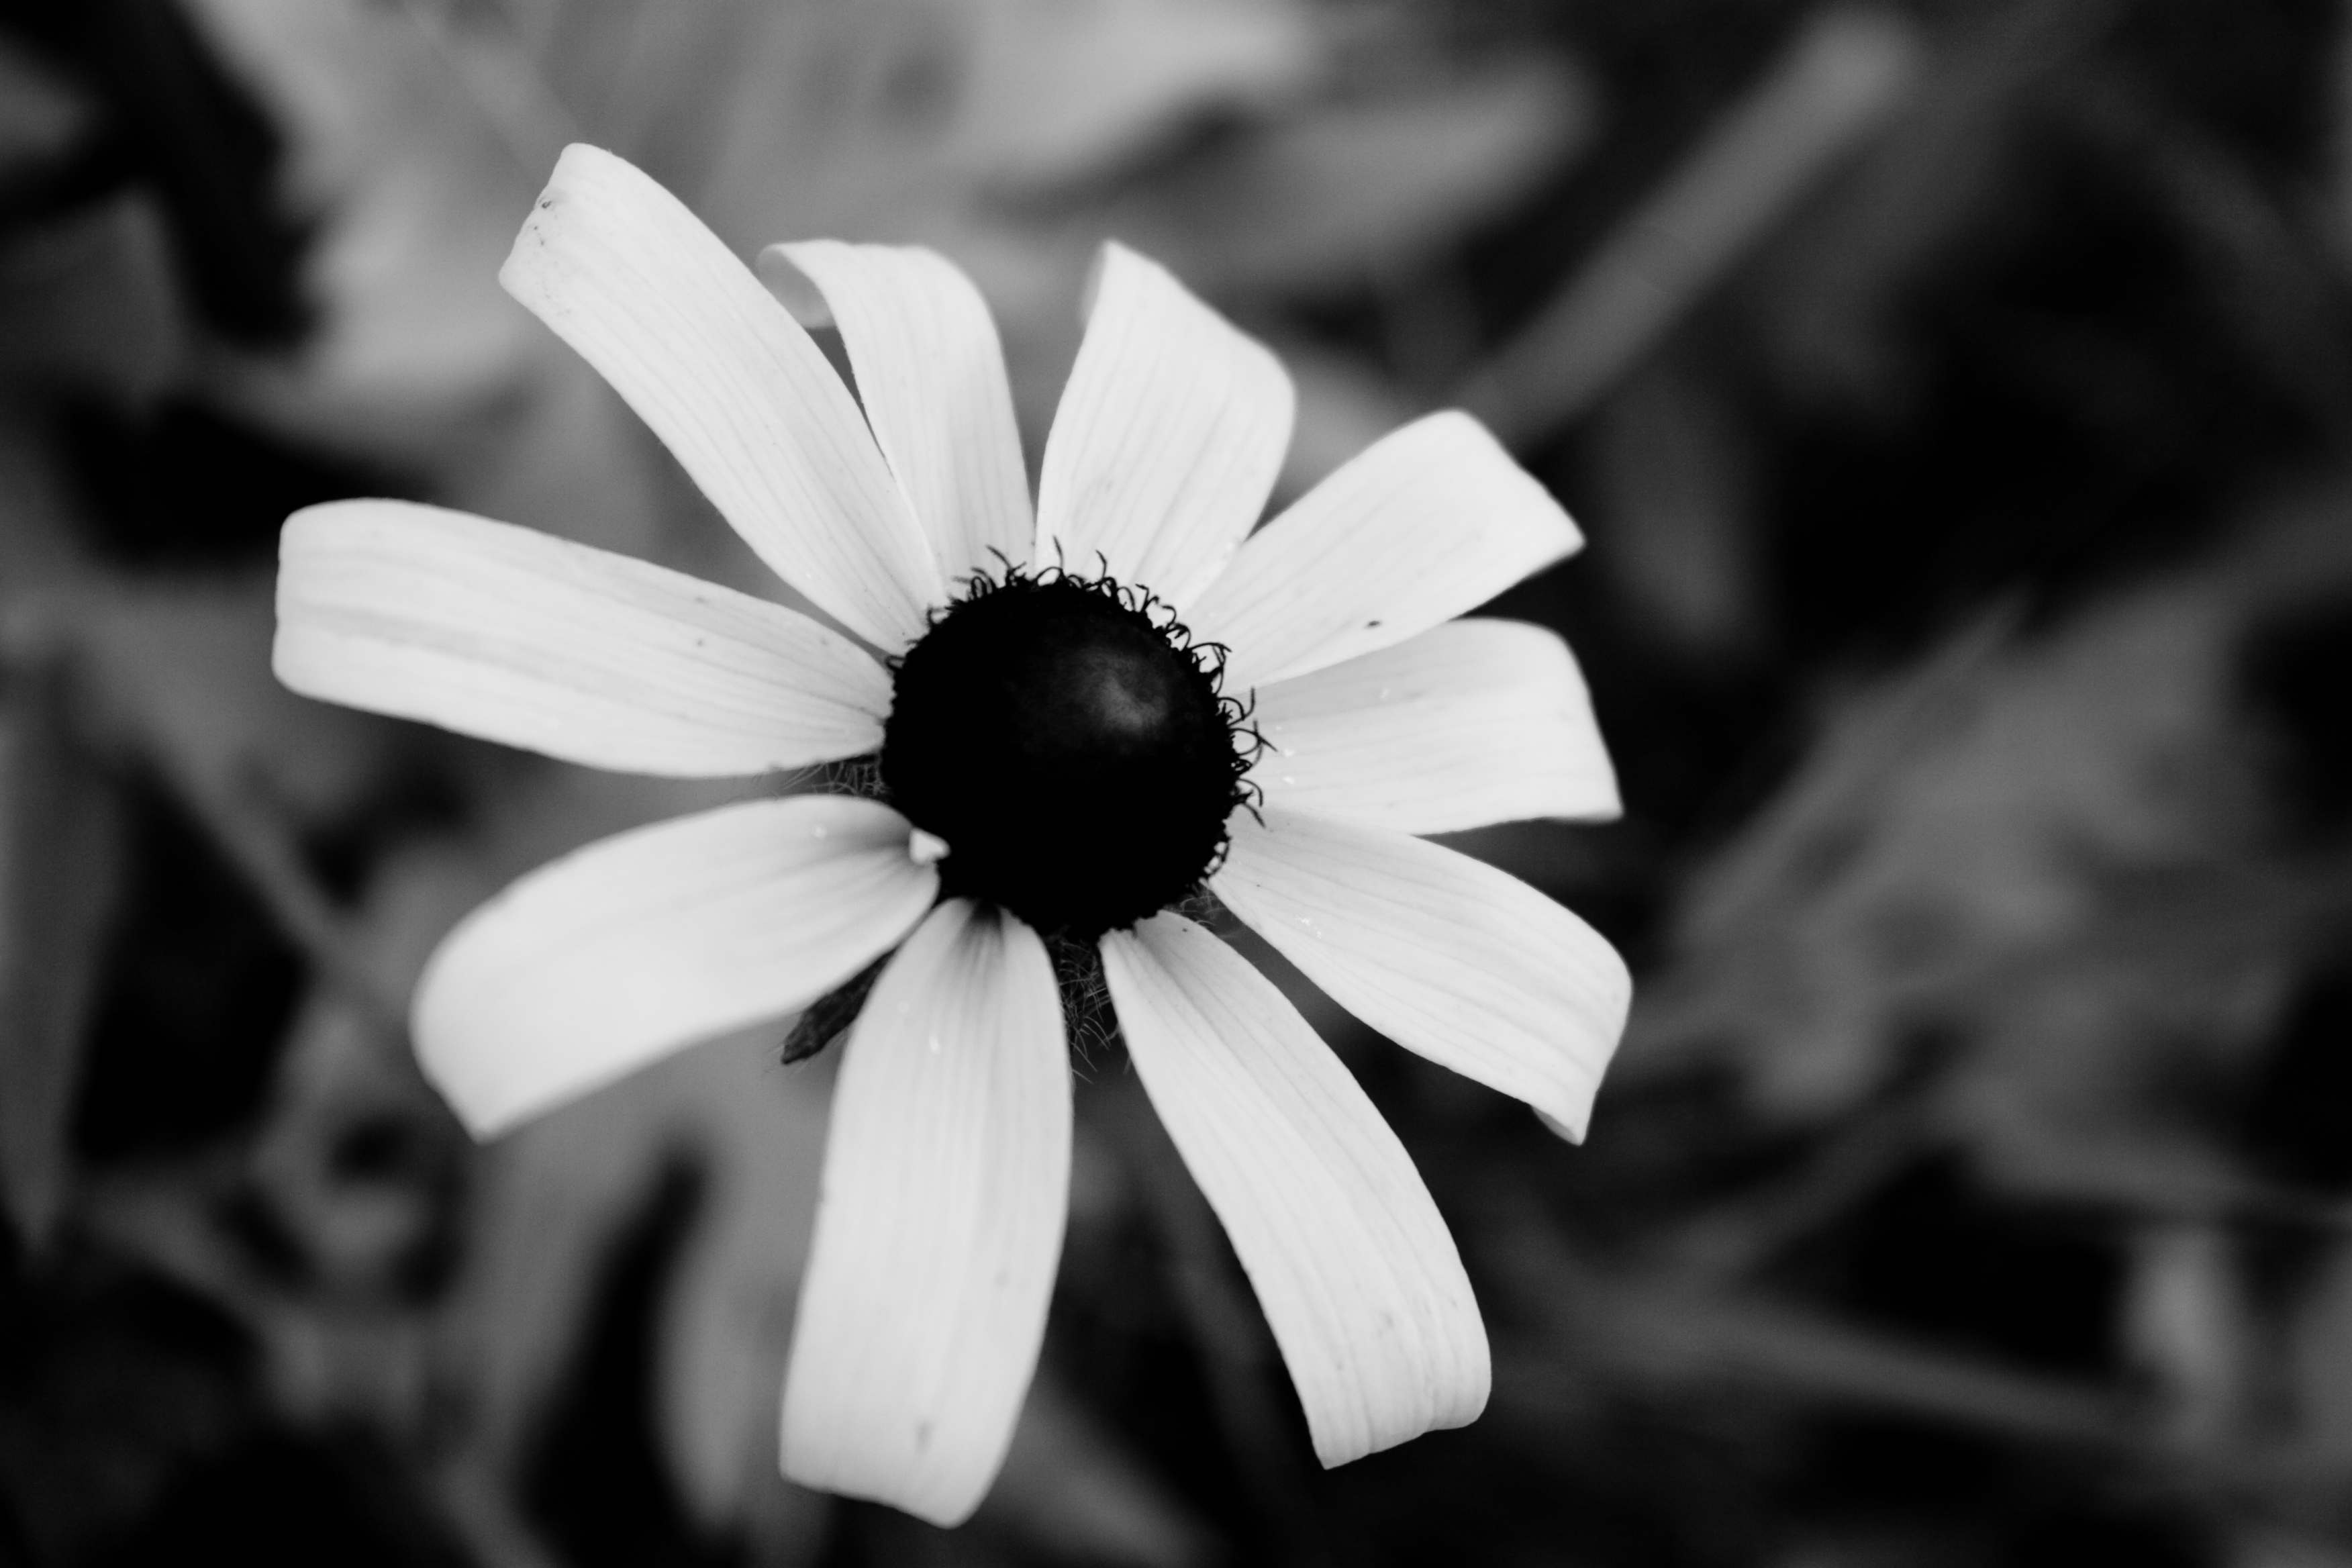 The Beauty Of Flowers Black White Wallpaper Backgrounds For